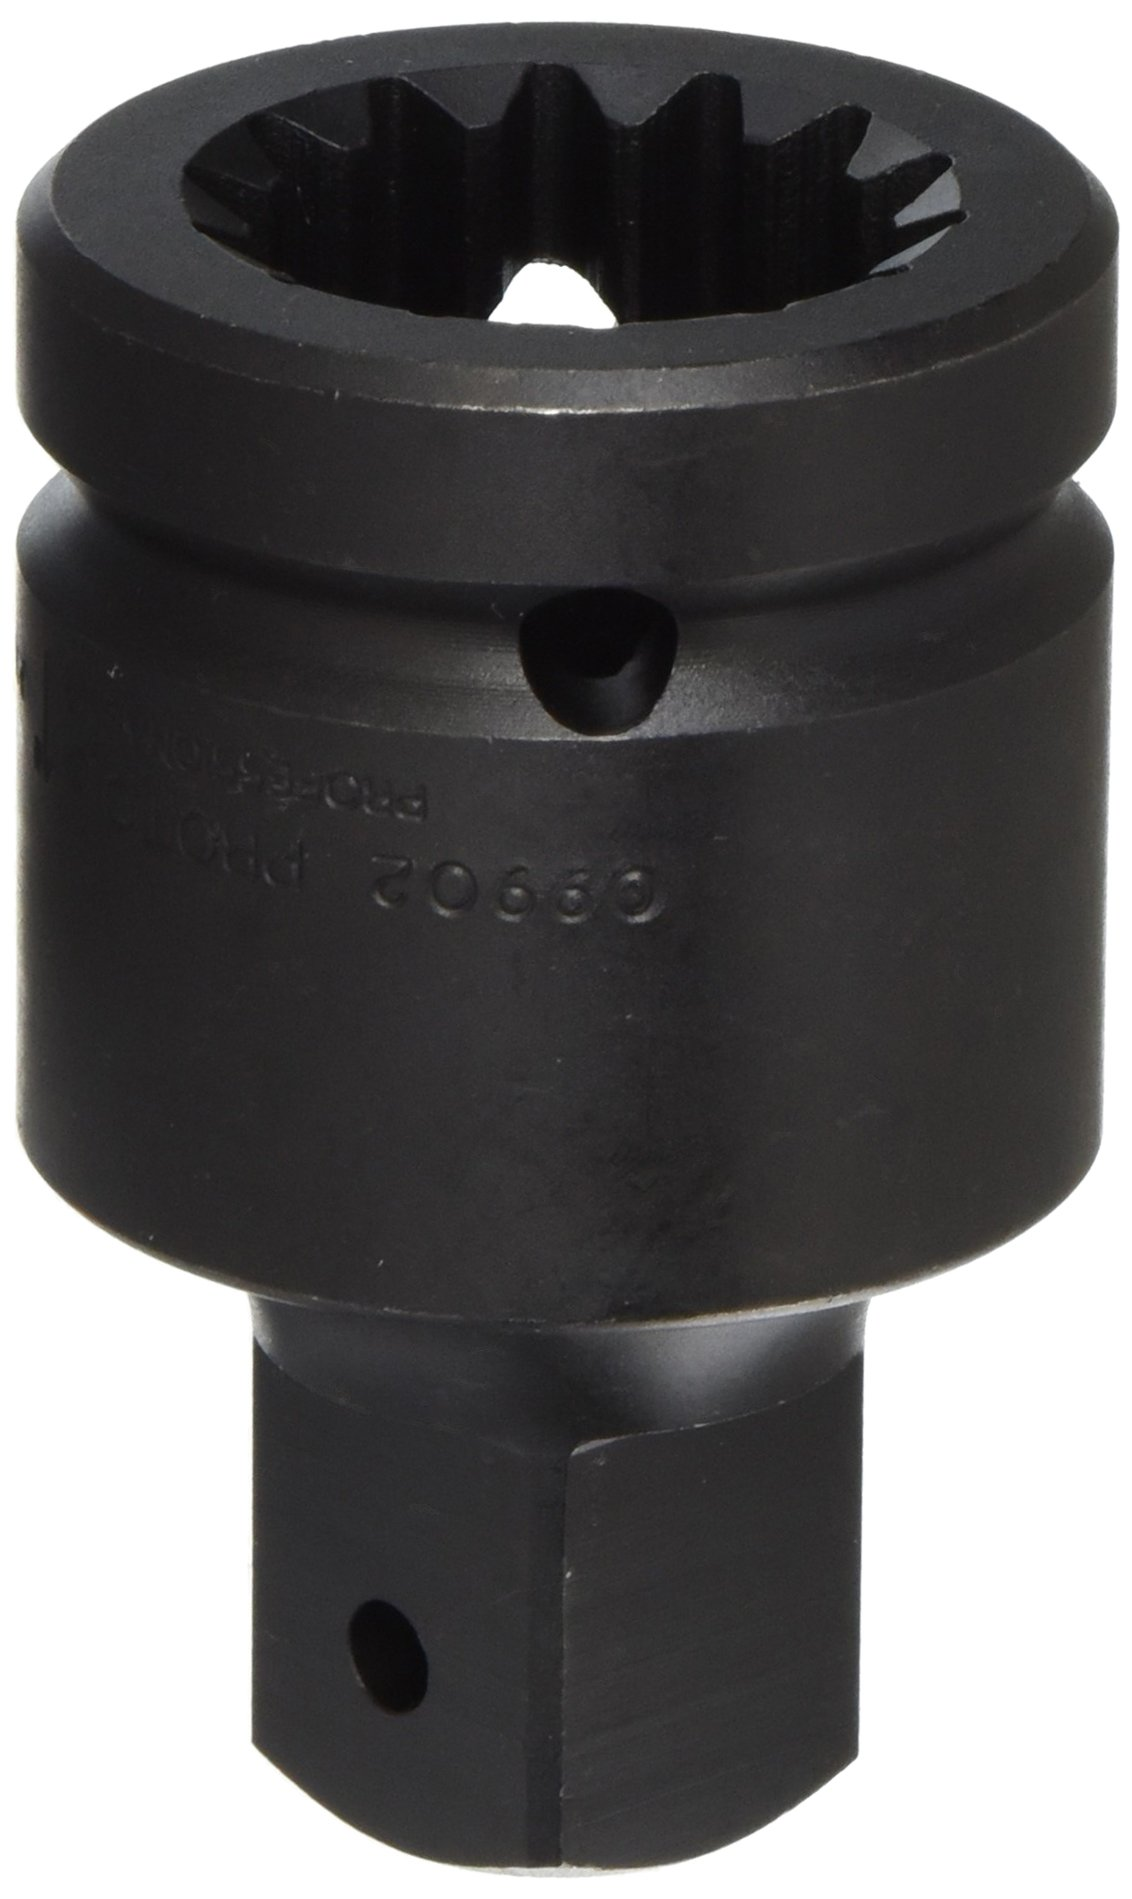 Stanley Proto J09902 Impact Drive Adapter, Number-5 Spline F by 1-Inch